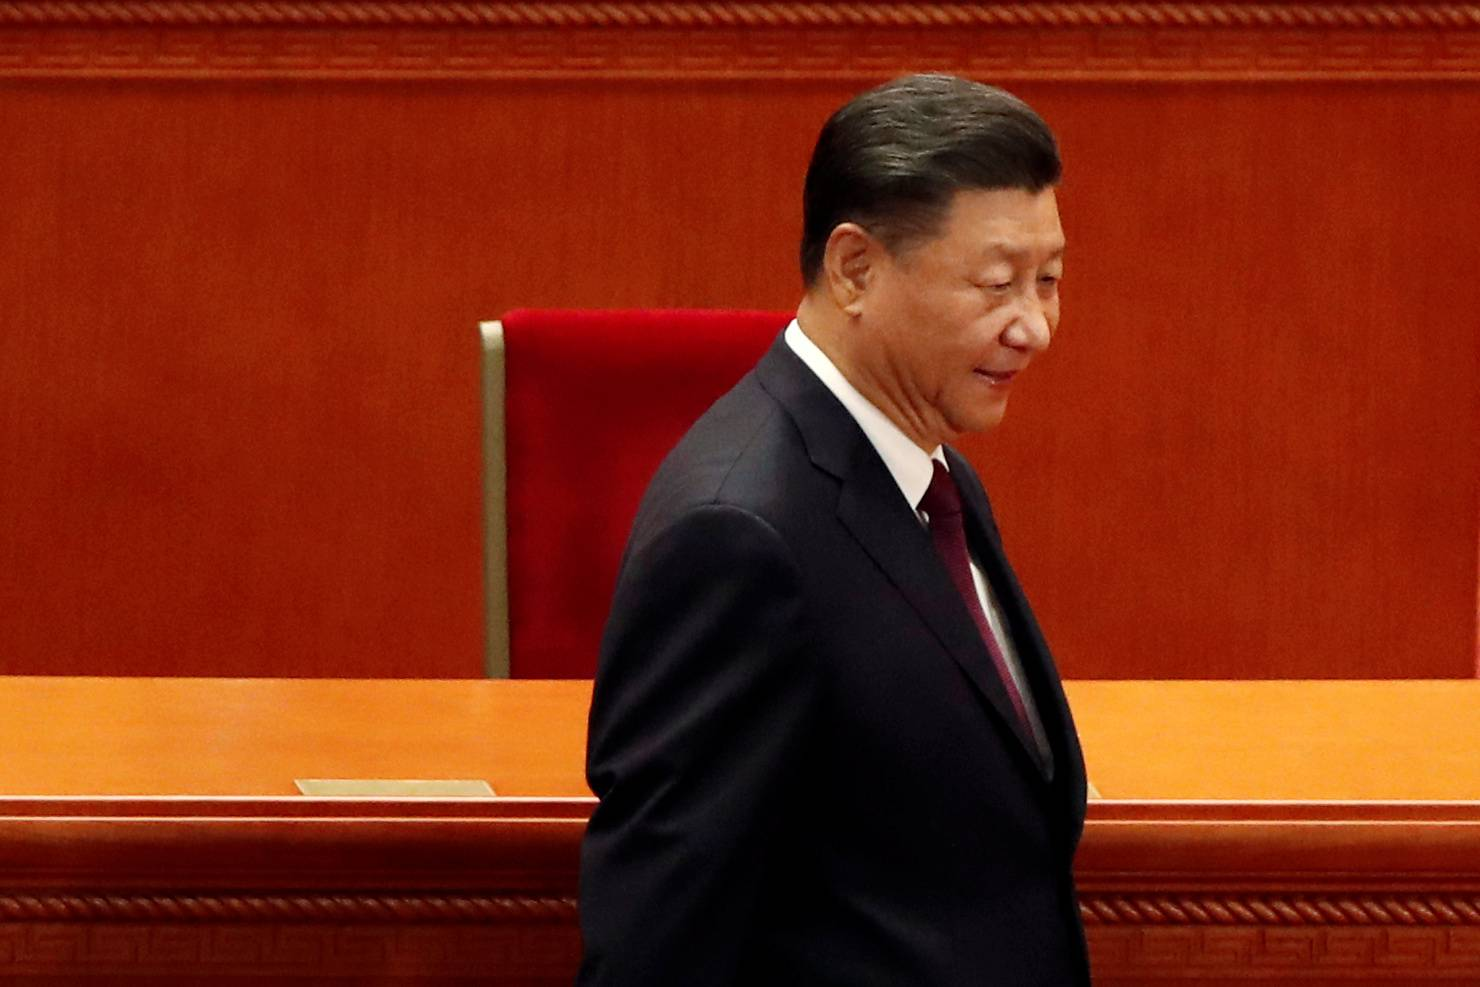 Chinese President Xi Jinping arrives for a meeting Tuesday at the Great Hall of the People in Beijing. | REUTERS